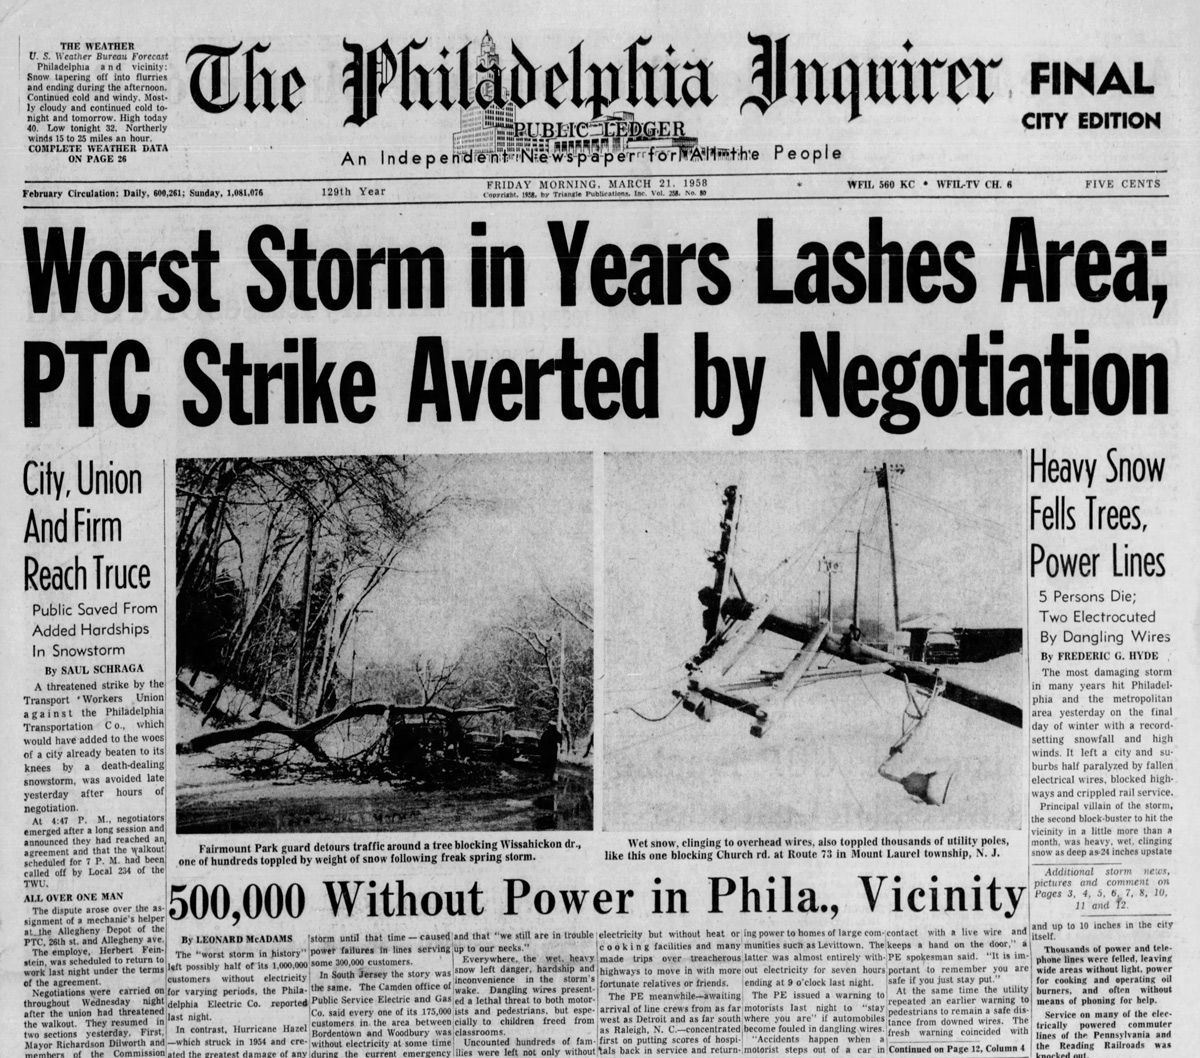 """The """"Philly Inquirer"""" headline on March 21, 1958 regarding the blizzard which became known as the """"Equinox Storm"""""""